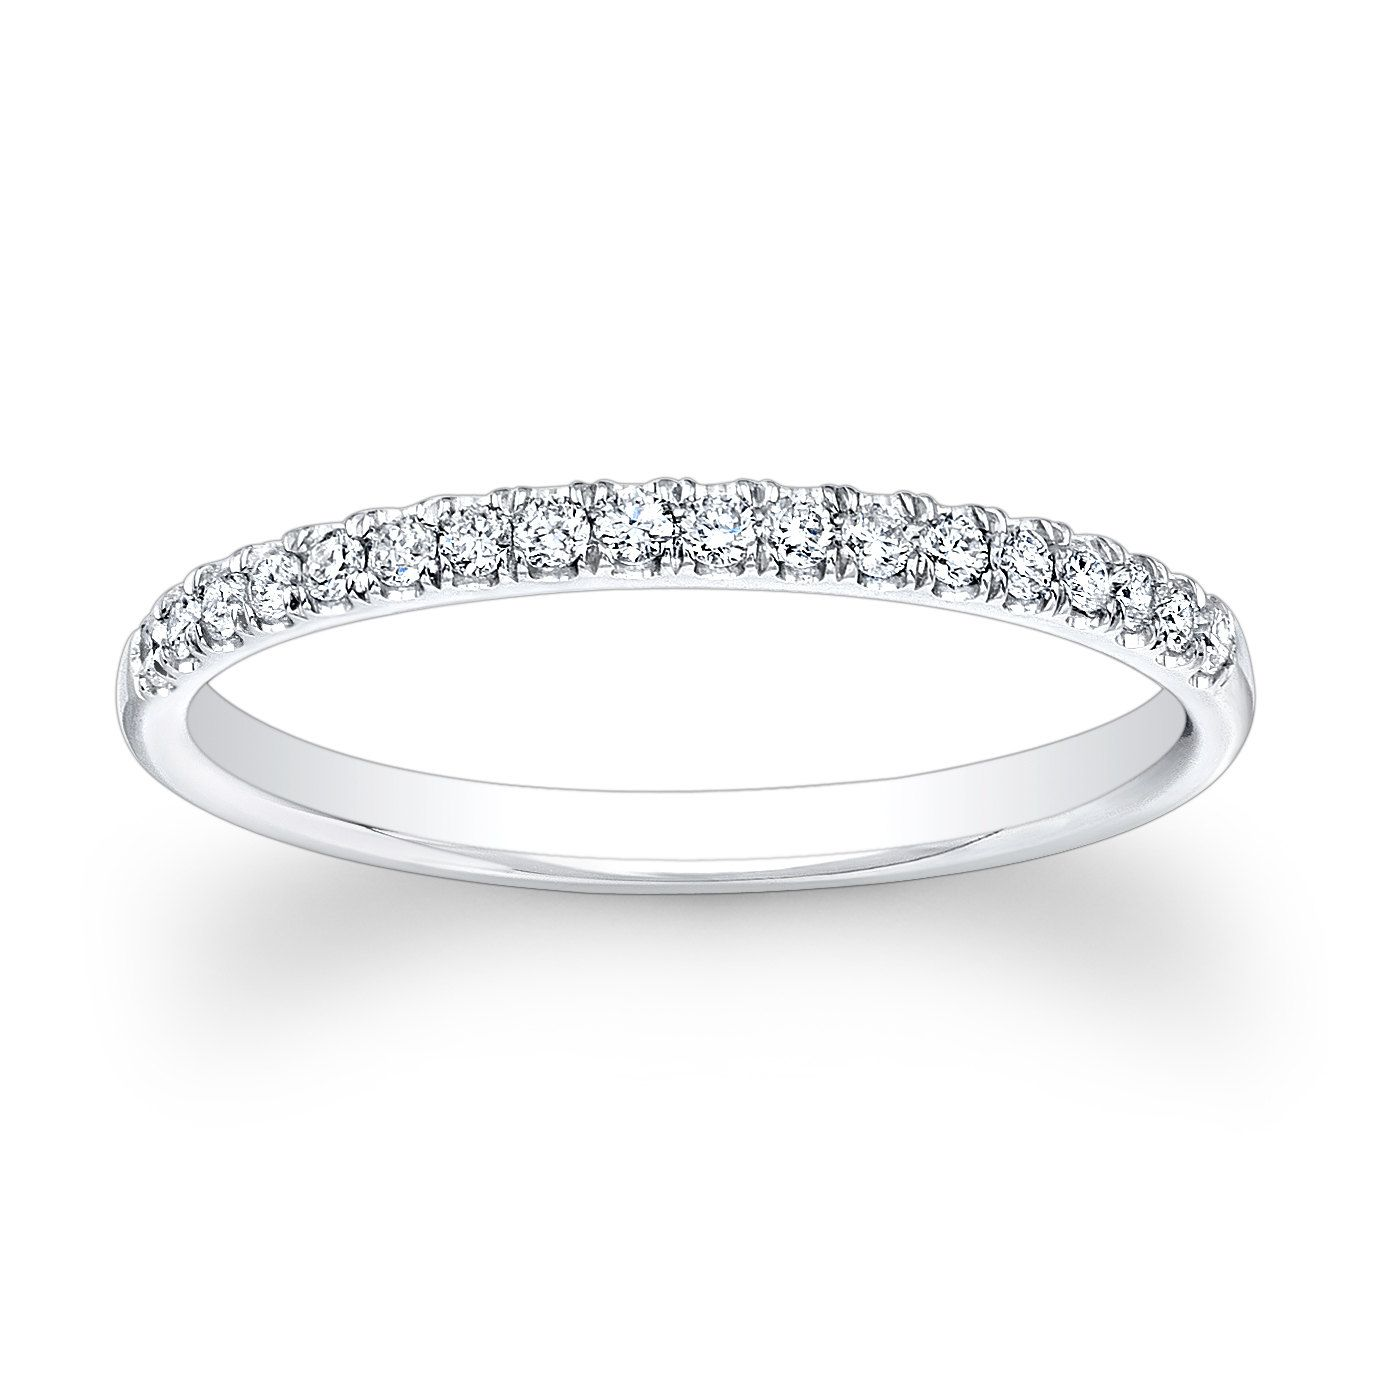 Thin More Delicate Band Whitney Tuna Diamond BandDiamond Wedding